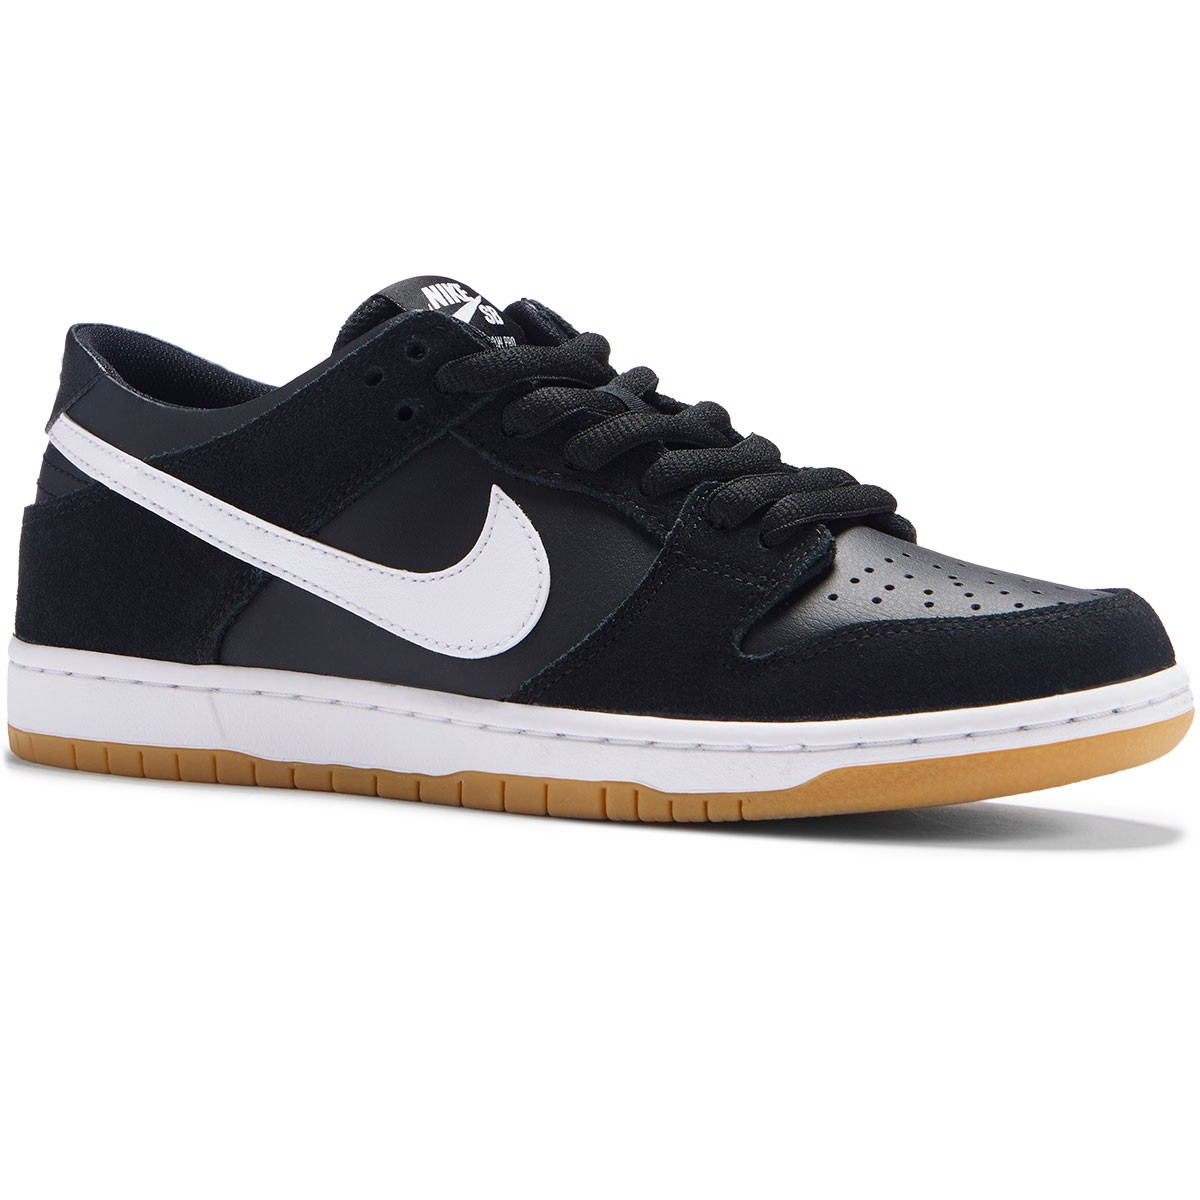 timeless design a8eed 03d15 Nike Dunk Low Pro SB Shoes